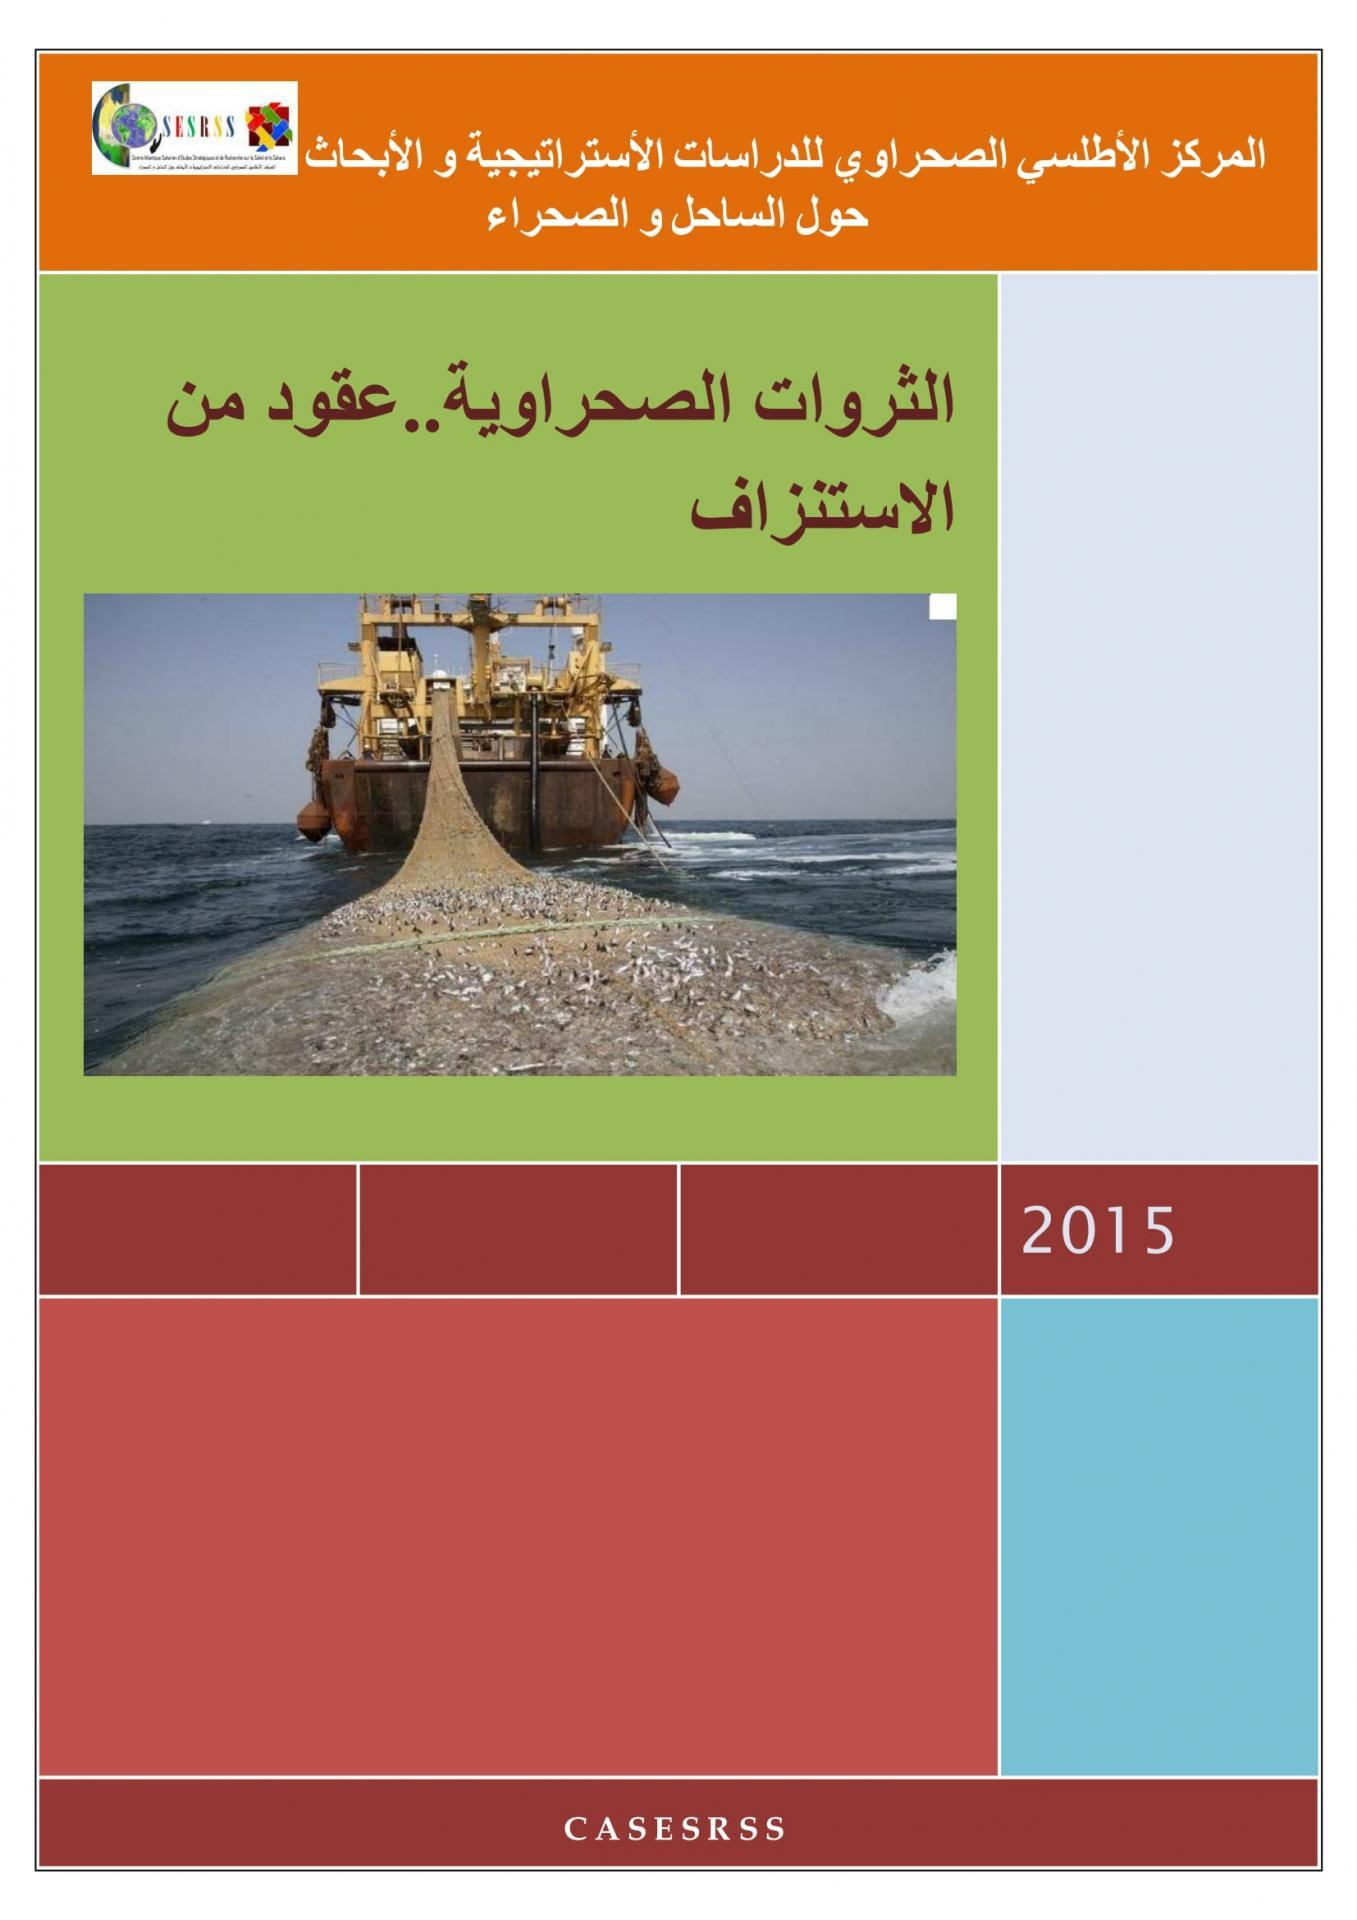 Rapport ressoureces 2015 1